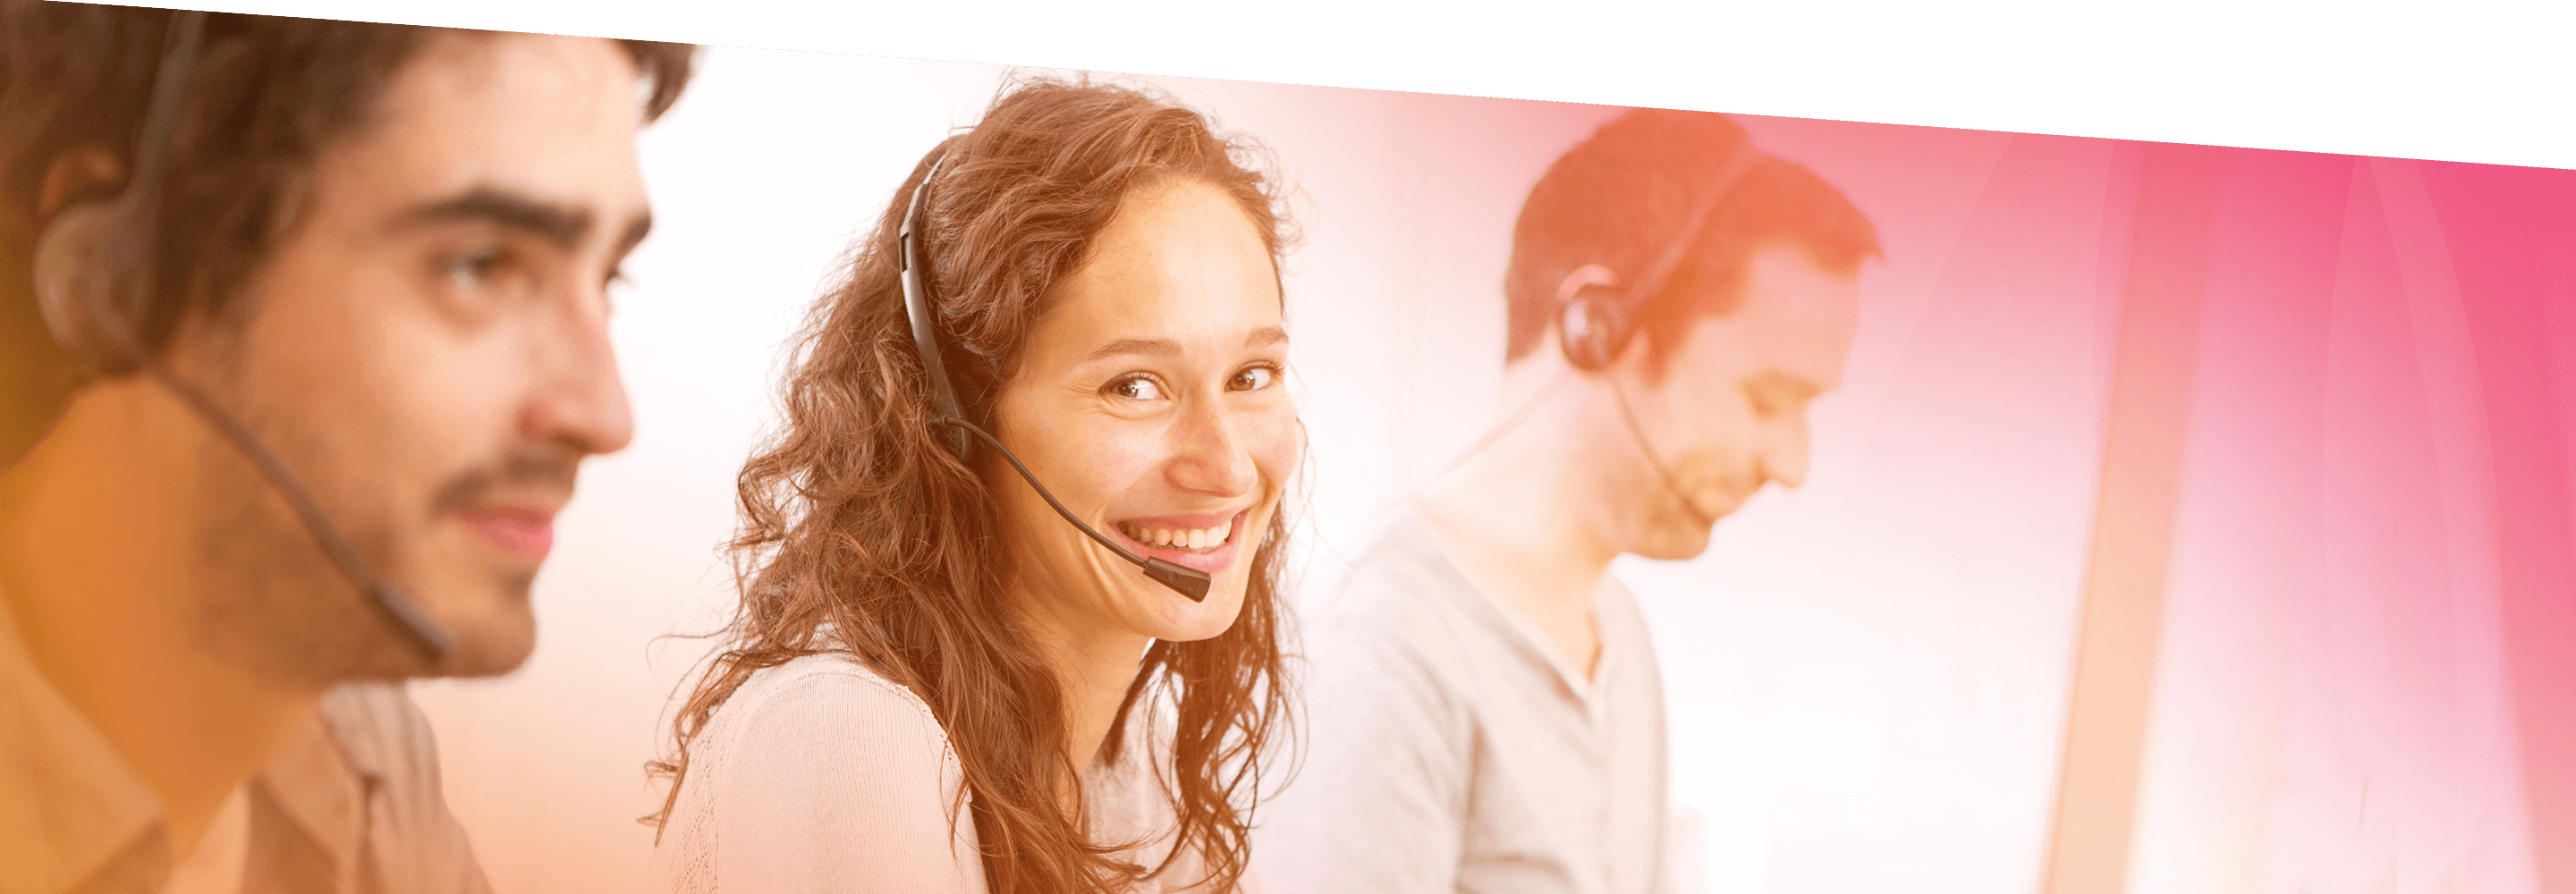 friendly customer service agents work the phones